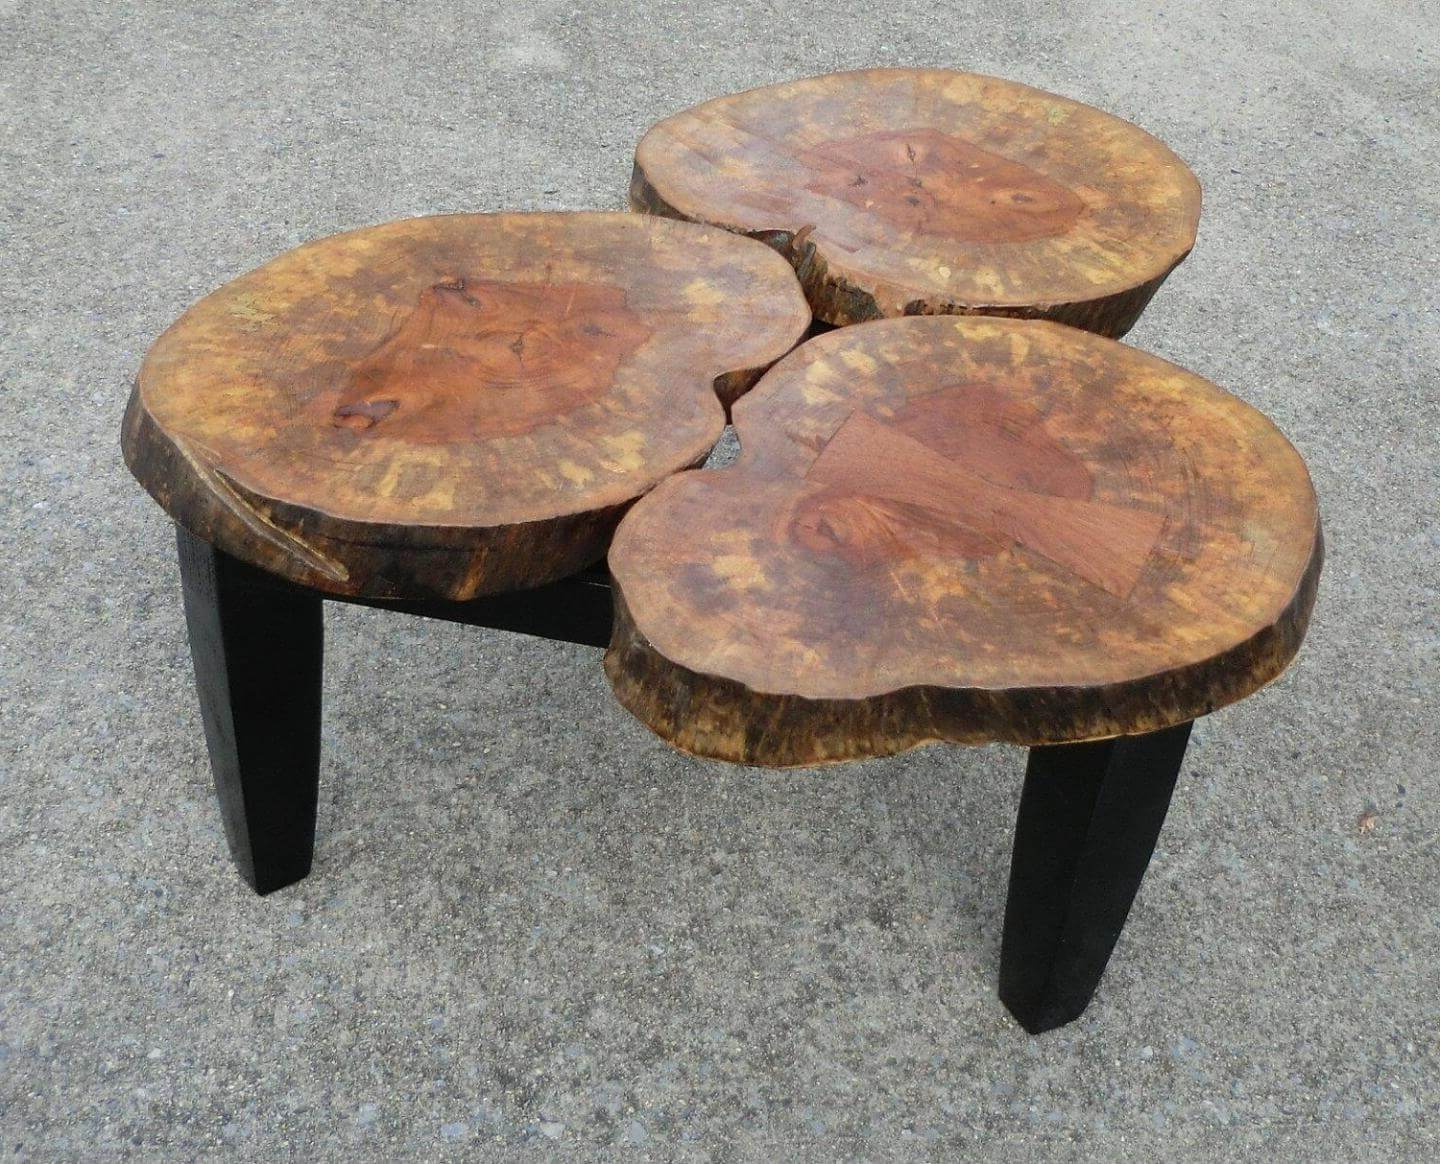 Oslo Burl Wood Veneer Coffee Tables Intended For Current Amish Tree Stump Coffee Tables : America Underwater Decor – Unique (Gallery 15 of 20)